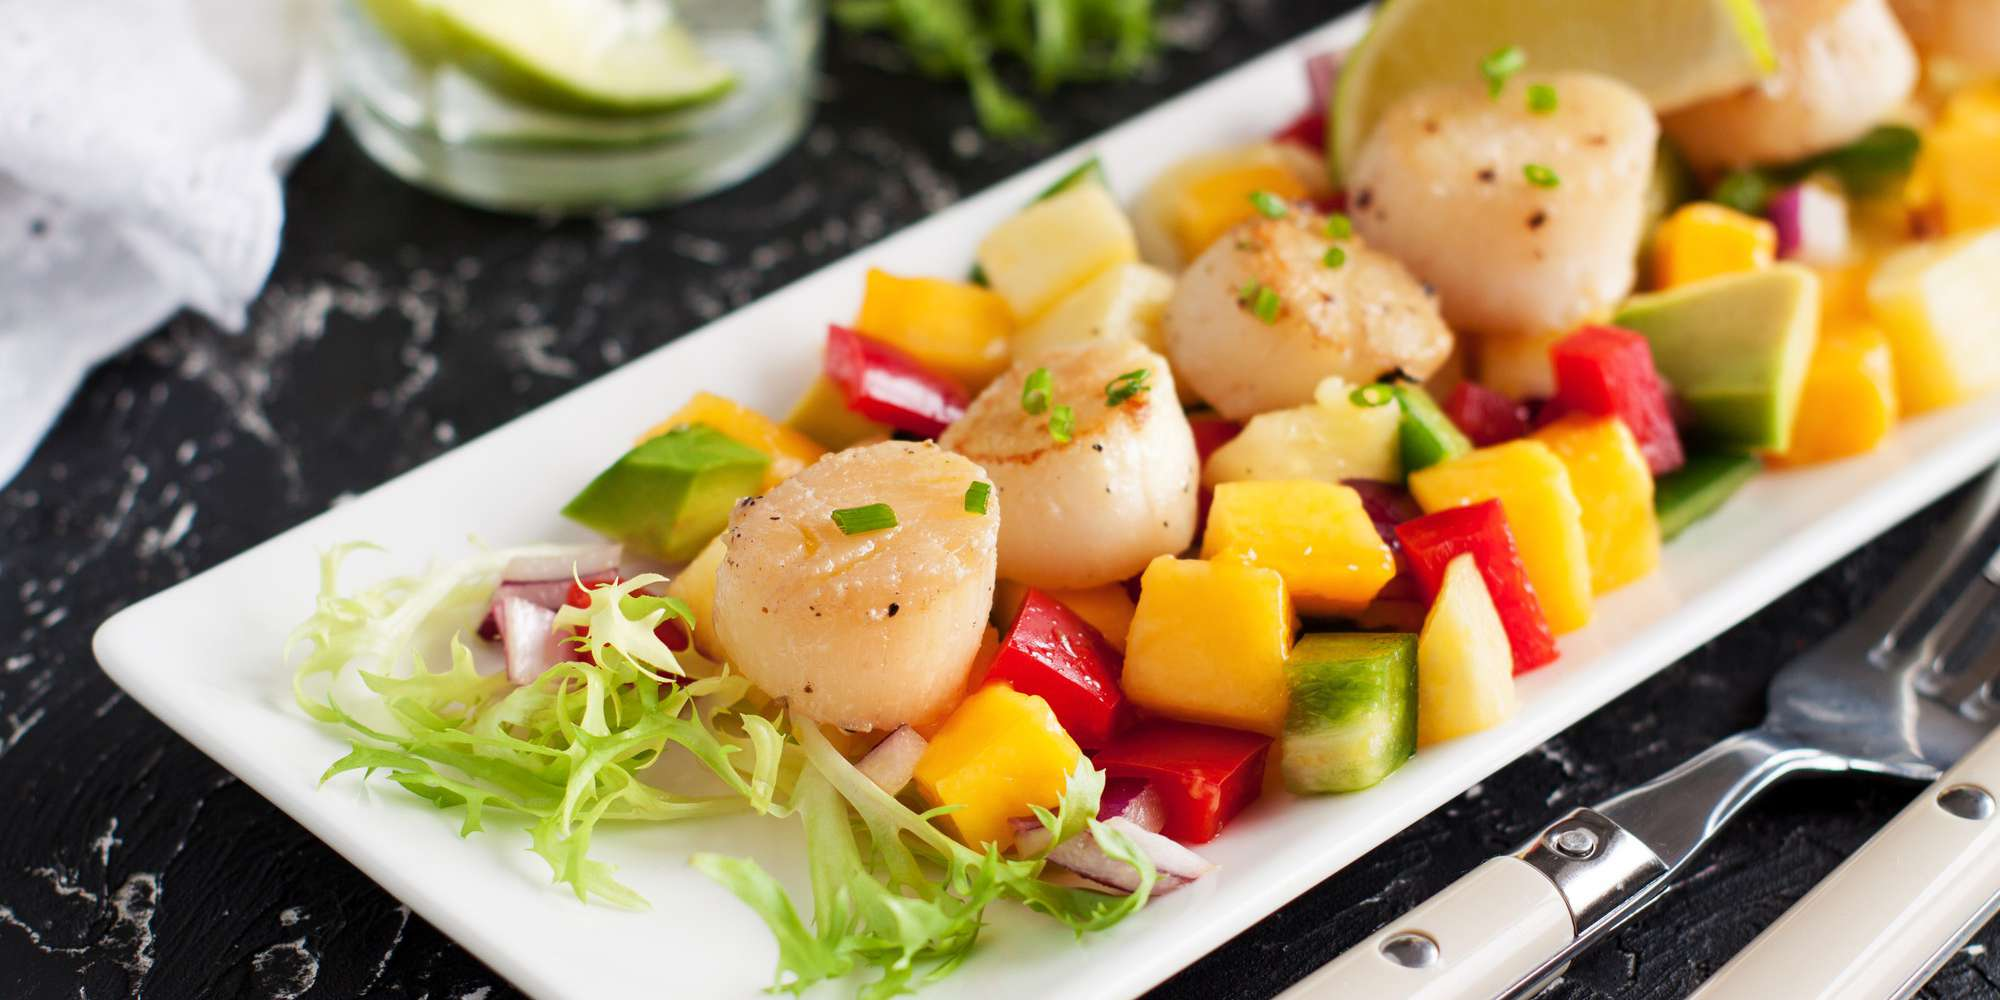 Caribbean Scallop Salad with Pineapple and Avocado